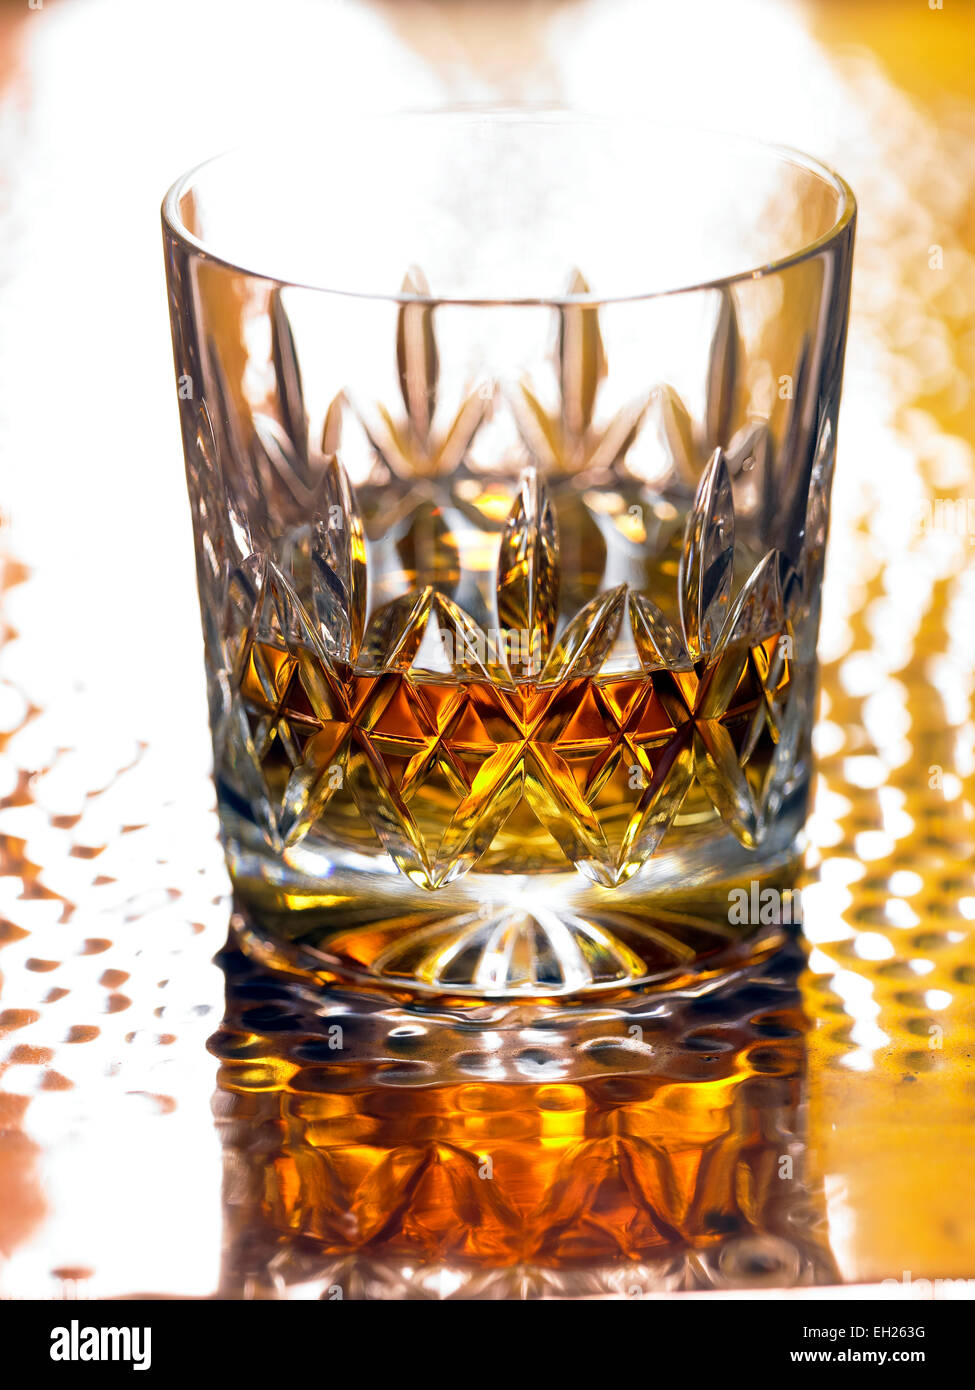 whisky in glass - Stock Image